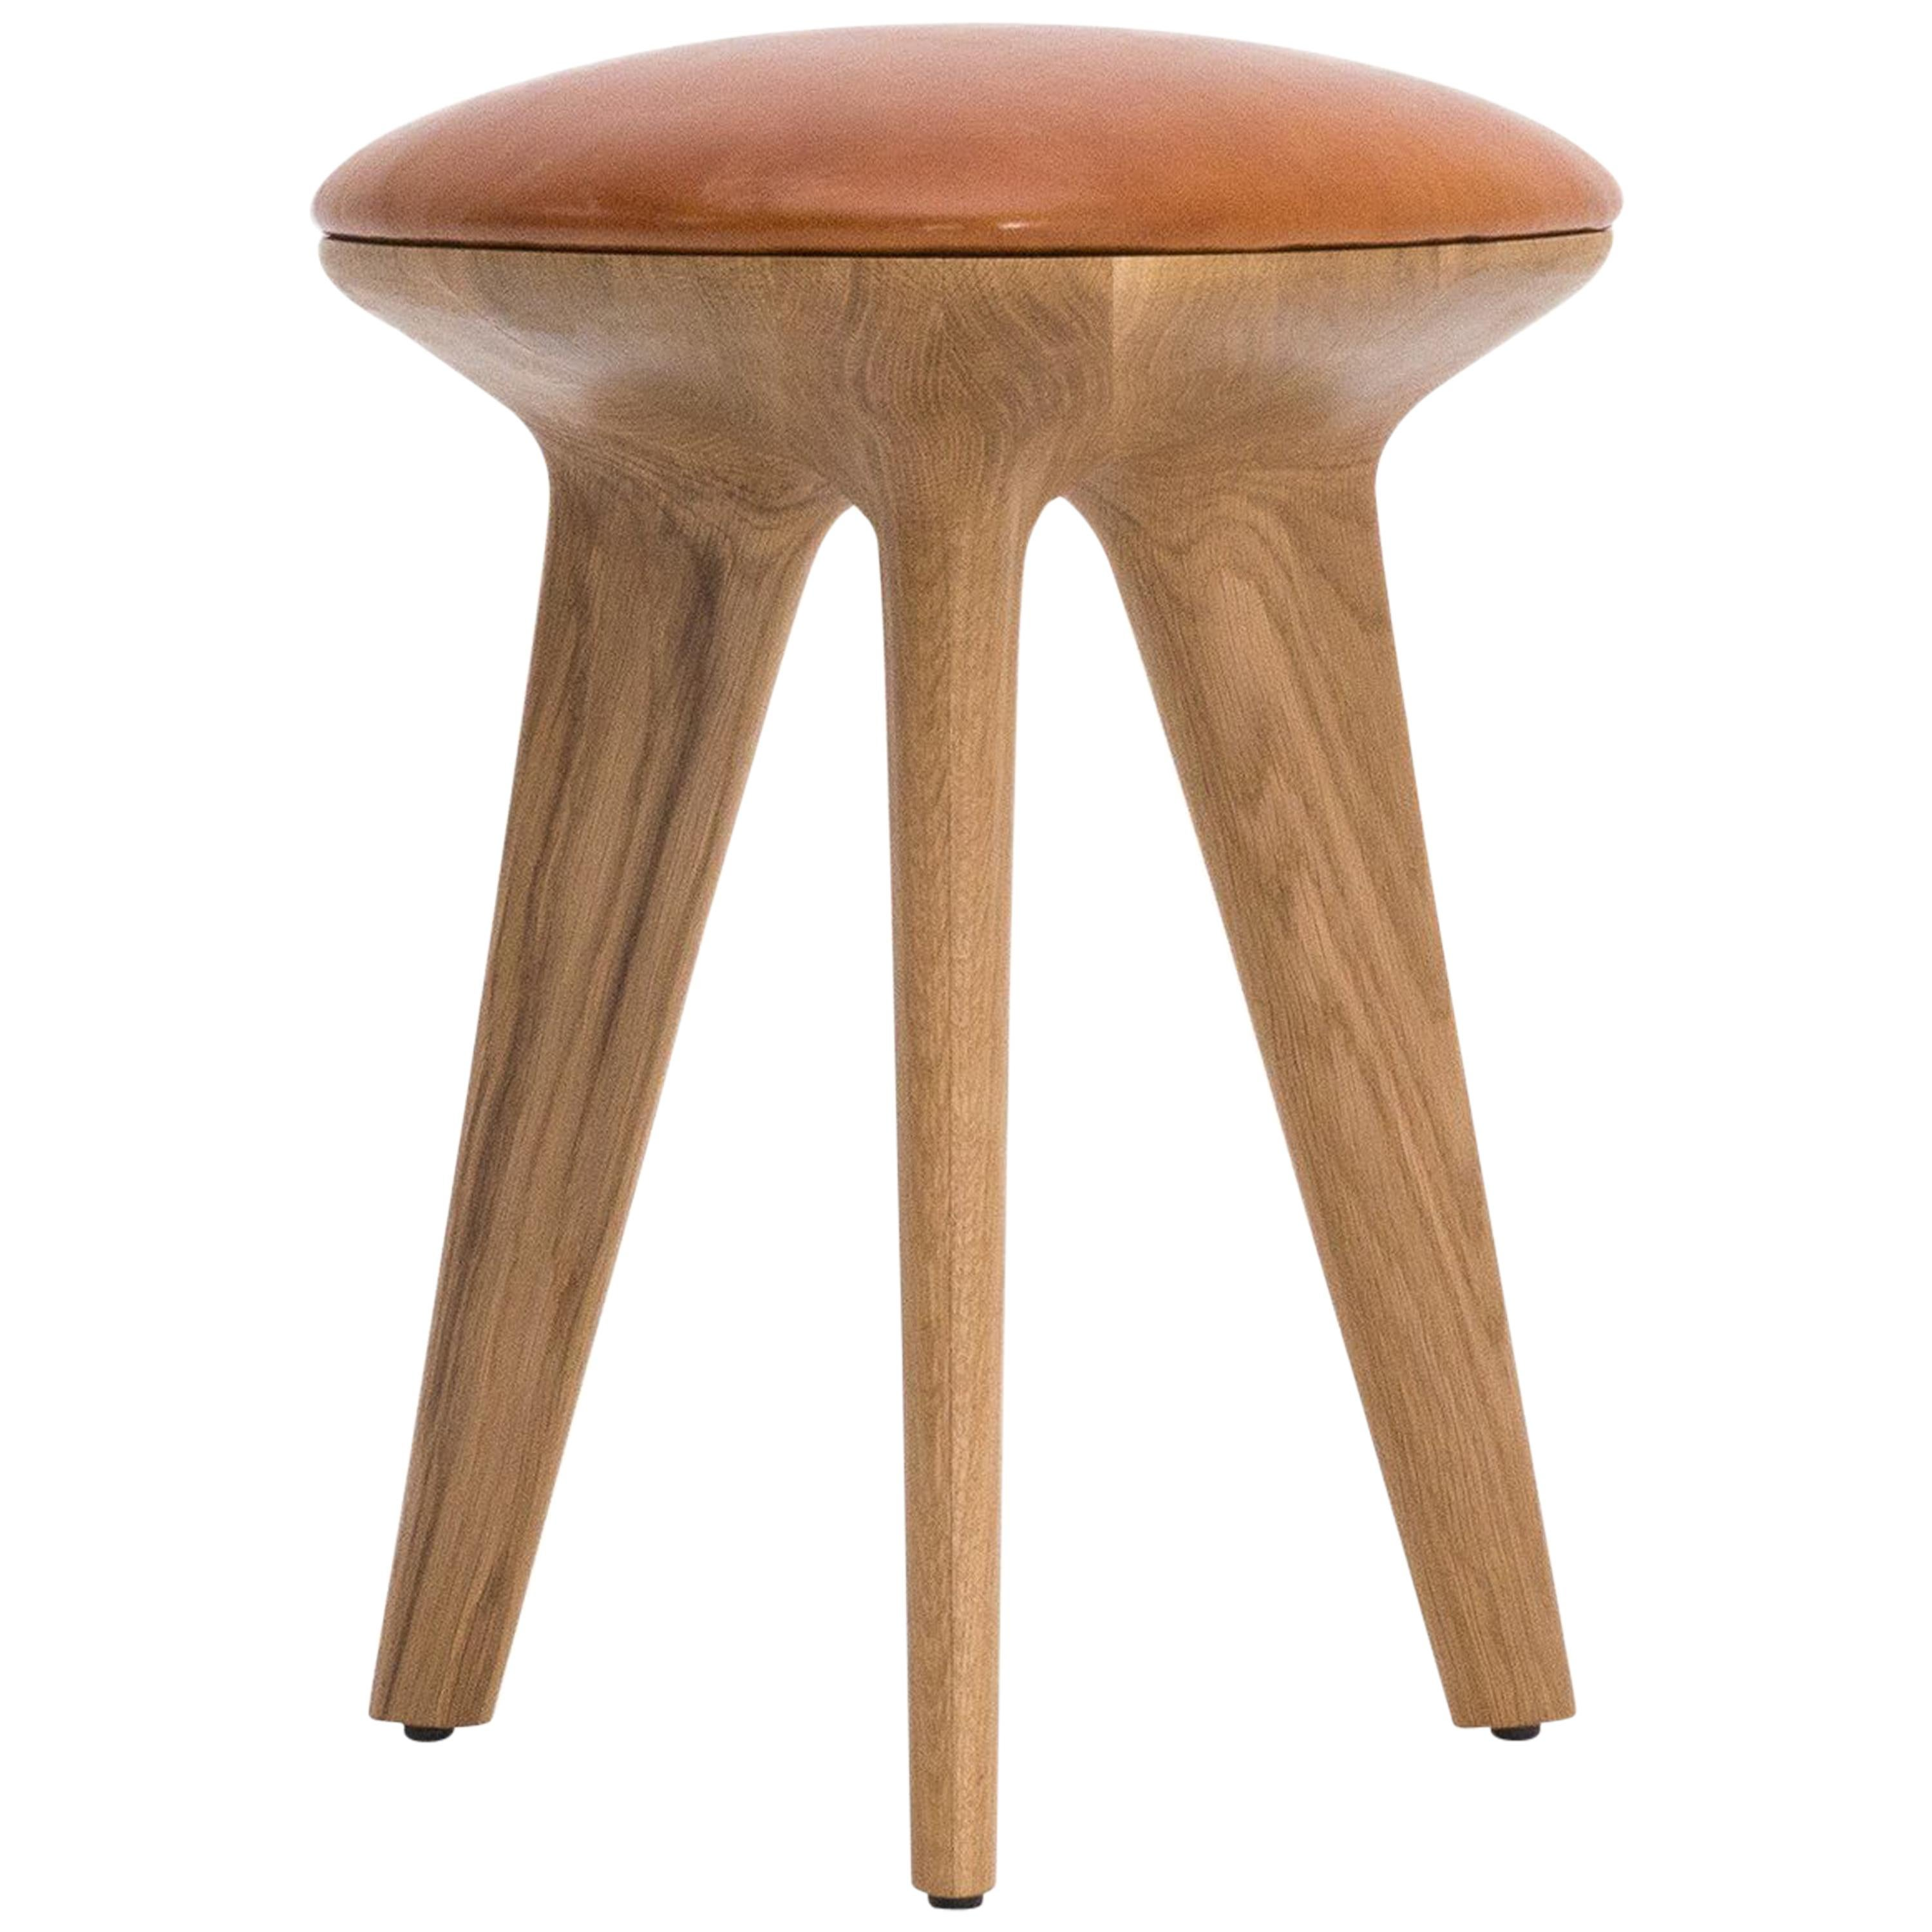 Rotor, Solid Oak Stool with Padded Tan Leather Seat by Made in Ratio